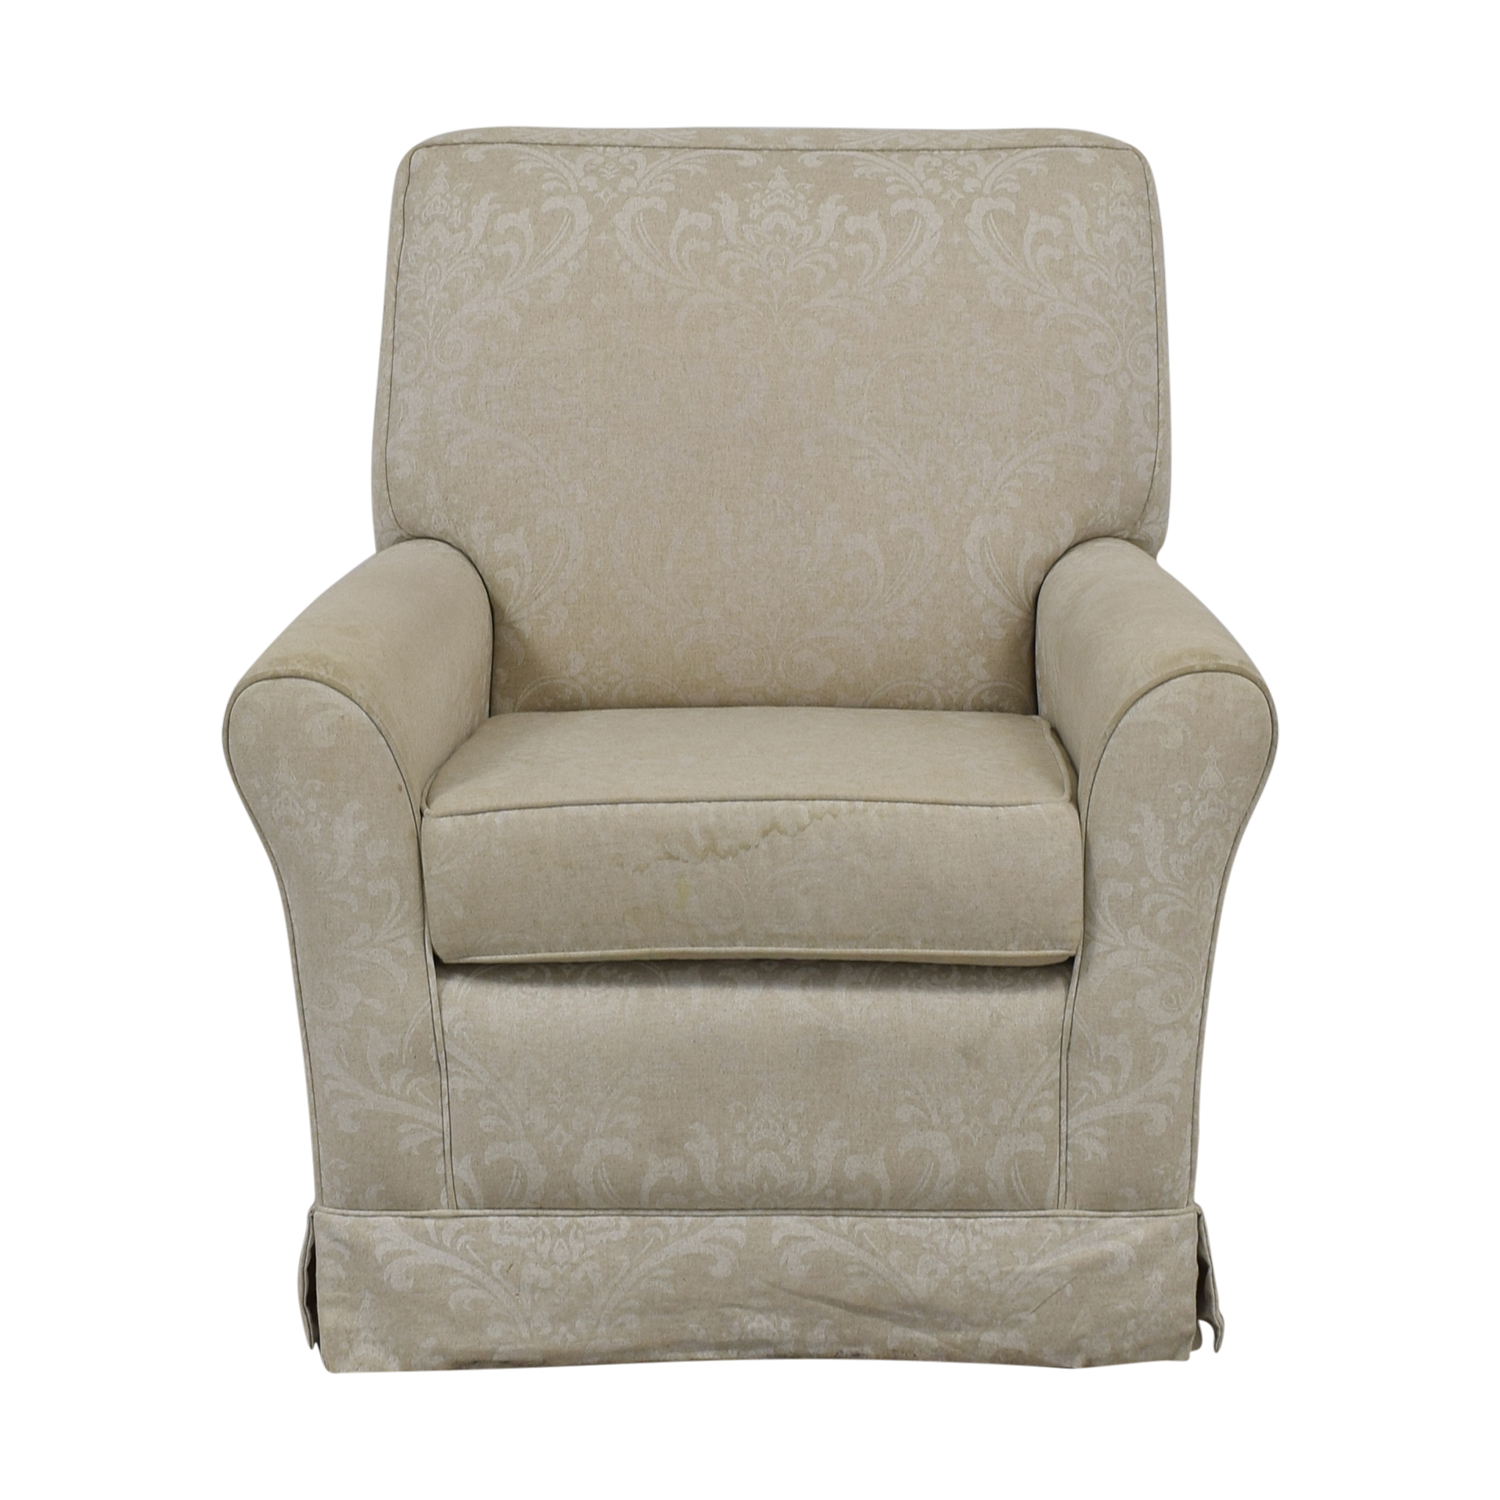 Slipcover Glider Chair and Ottoman